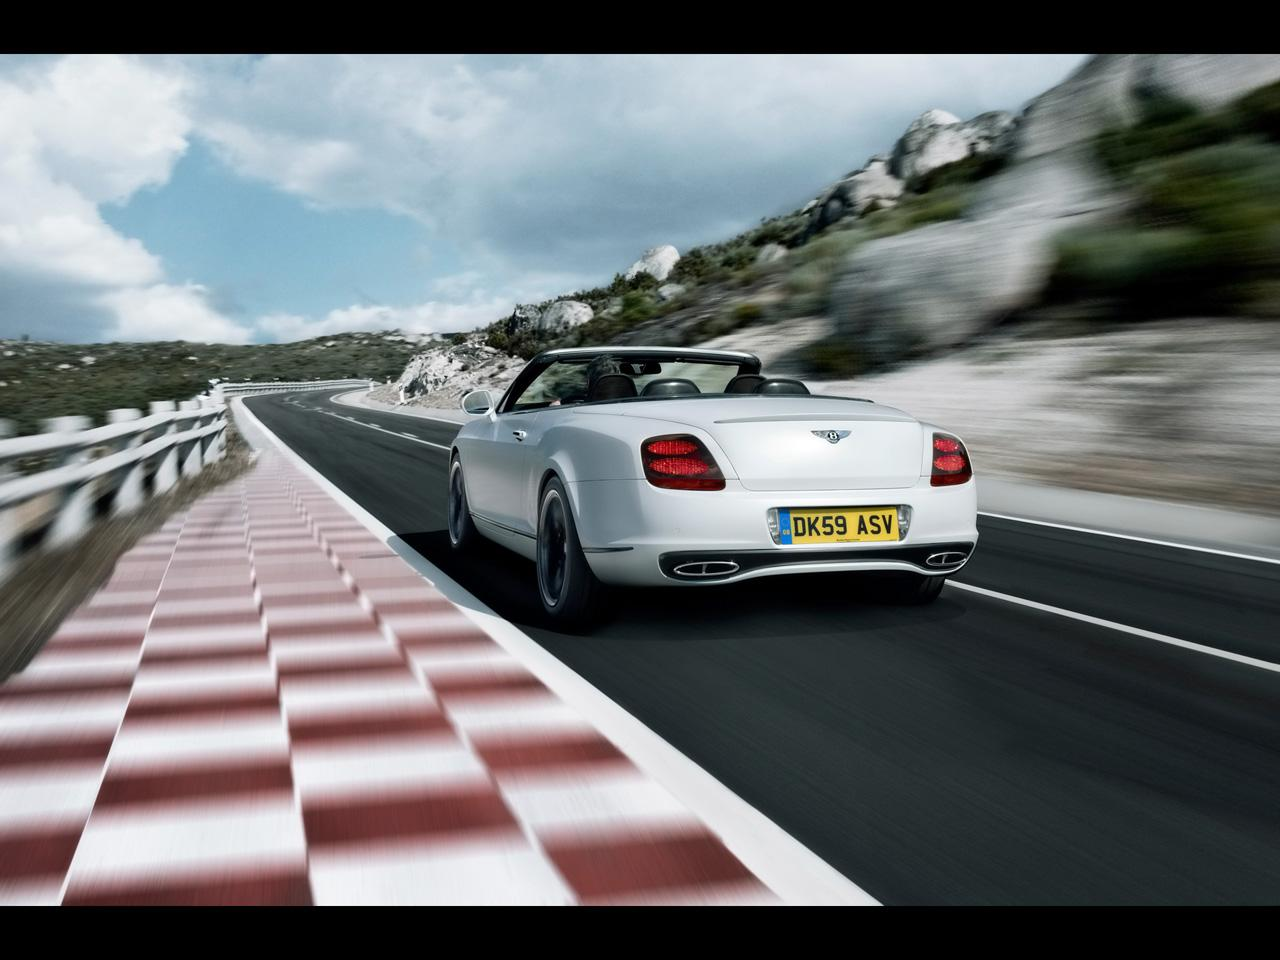 2010 Bentley Continental Supersports Convertible Wallpapers in High ...